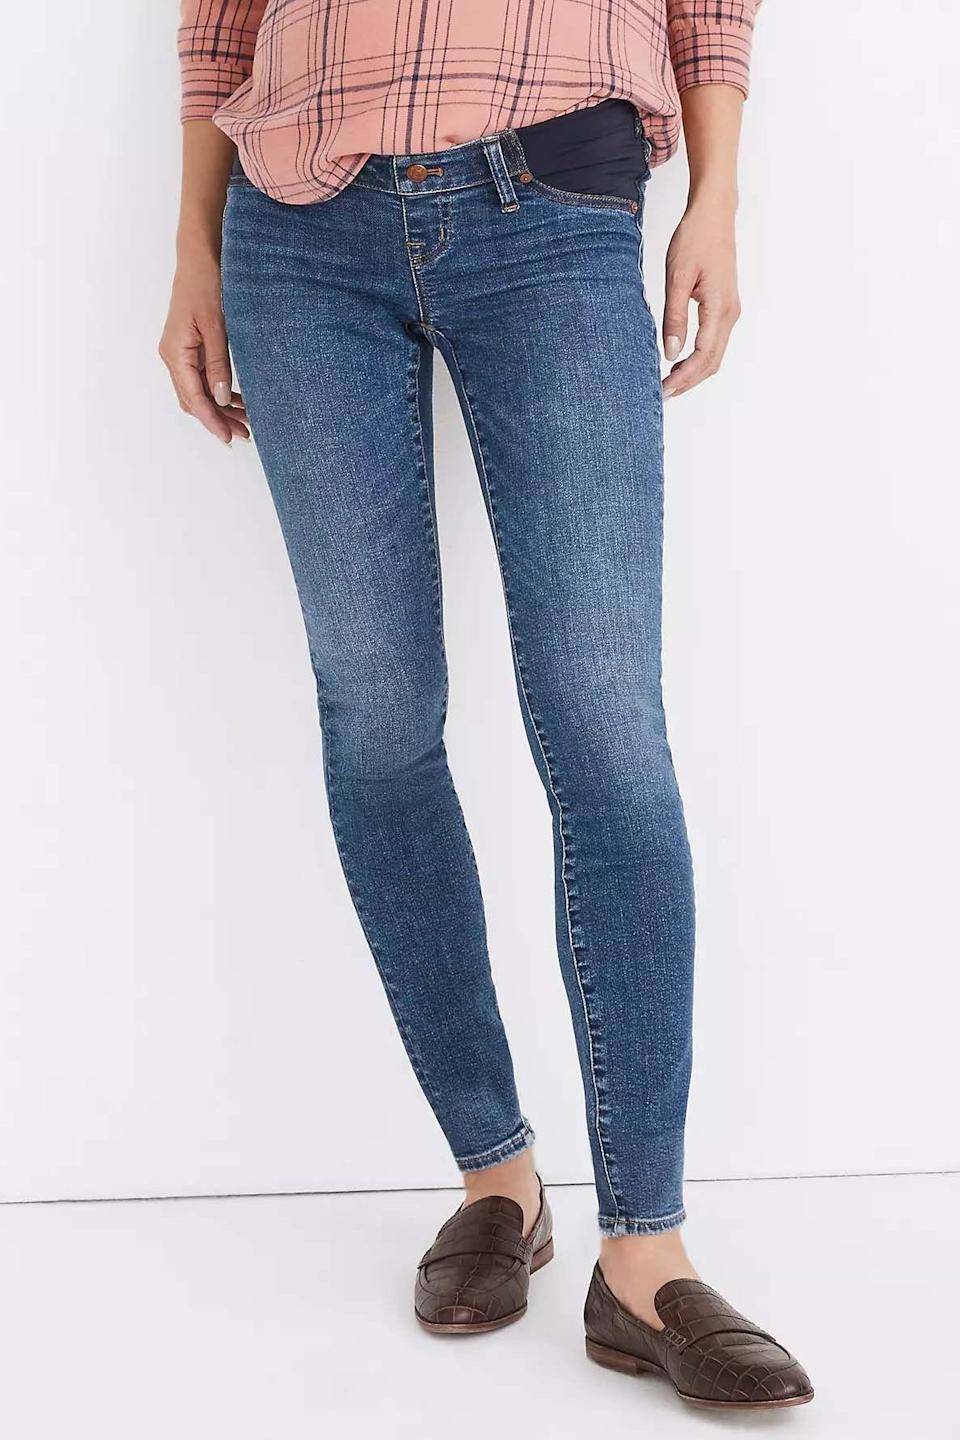 """<p><strong>Madewell</strong></p><p>madewell.com</p><p><strong>$138.00</strong></p><p><a href=""""https://go.redirectingat.com?id=74968X1596630&url=https%3A%2F%2Fwww.madewell.com%2Fmaternity-side-panel-skinny-jeans-in-wendover-wash-adjustable-tenceltrade%253B-denim-edition-MB509.html&sref=https%3A%2F%2Fwww.goodhousekeeping.com%2Fchildrens-products%2Fg34498315%2Fbest-maternity-jeans%2F"""" rel=""""nofollow noopener"""" target=""""_blank"""" data-ylk=""""slk:Shop Now"""" class=""""link rapid-noclick-resp"""">Shop Now</a></p><p>While most jeans are made of cotton, these are blended with <strong>11% <a href=""""https://www.goodhousekeeping.com/clothing/a27560140/what-is-tencel-fabric/"""" rel=""""nofollow noopener"""" target=""""_blank"""" data-ylk=""""slk:TENCEL lyocell"""" class=""""link rapid-noclick-resp"""">TENCEL lyocell</a>, a man-made fiber that uses wood pulp as the raw material and feels incredibly soft and silky.</strong> It has inset panels in the front and a high rise in the back for more coverage. Like some of the other styles, they're stretchy so they are easy to slip on and give a comfortable fit throughout the day.</p>"""